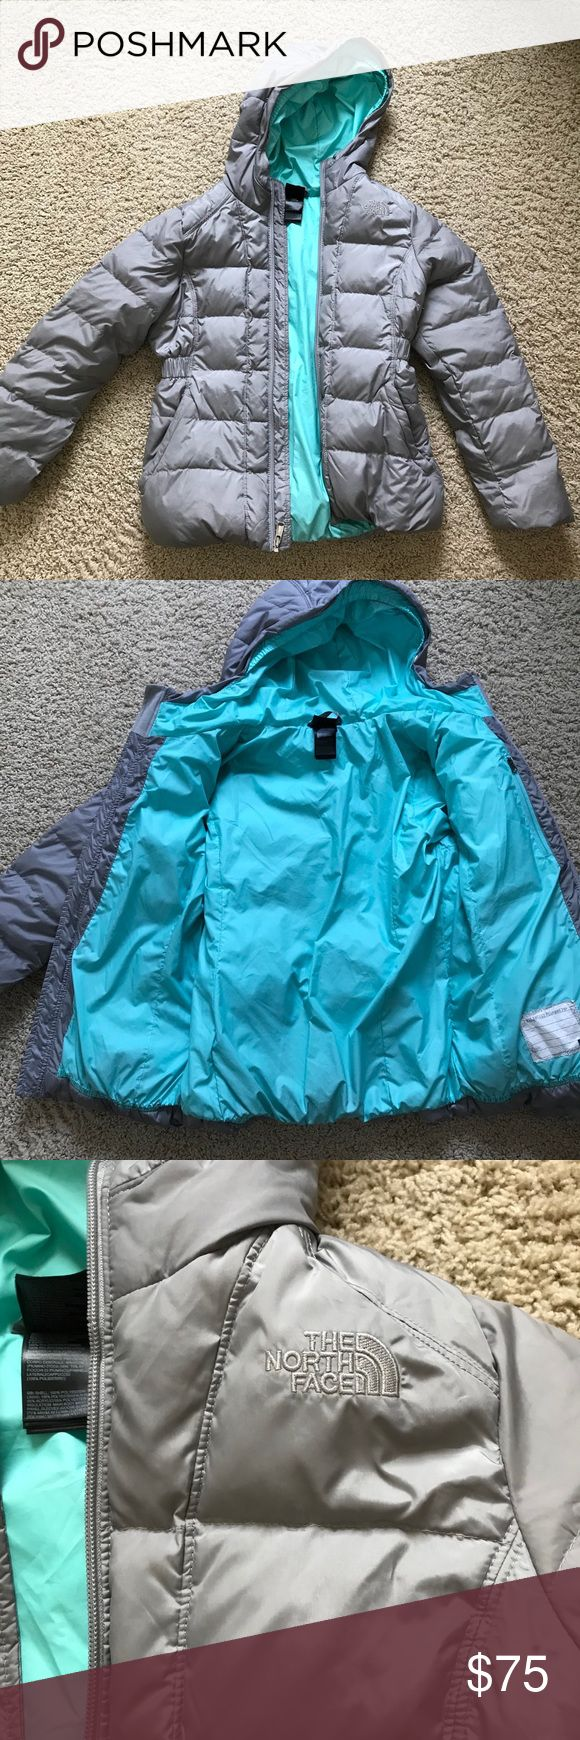 Girls North Face winter puffer euc 14/16 Excellent condition girls gray w/ turquoise interior hooded north face fleece North Face Jackets & Coats Puffers